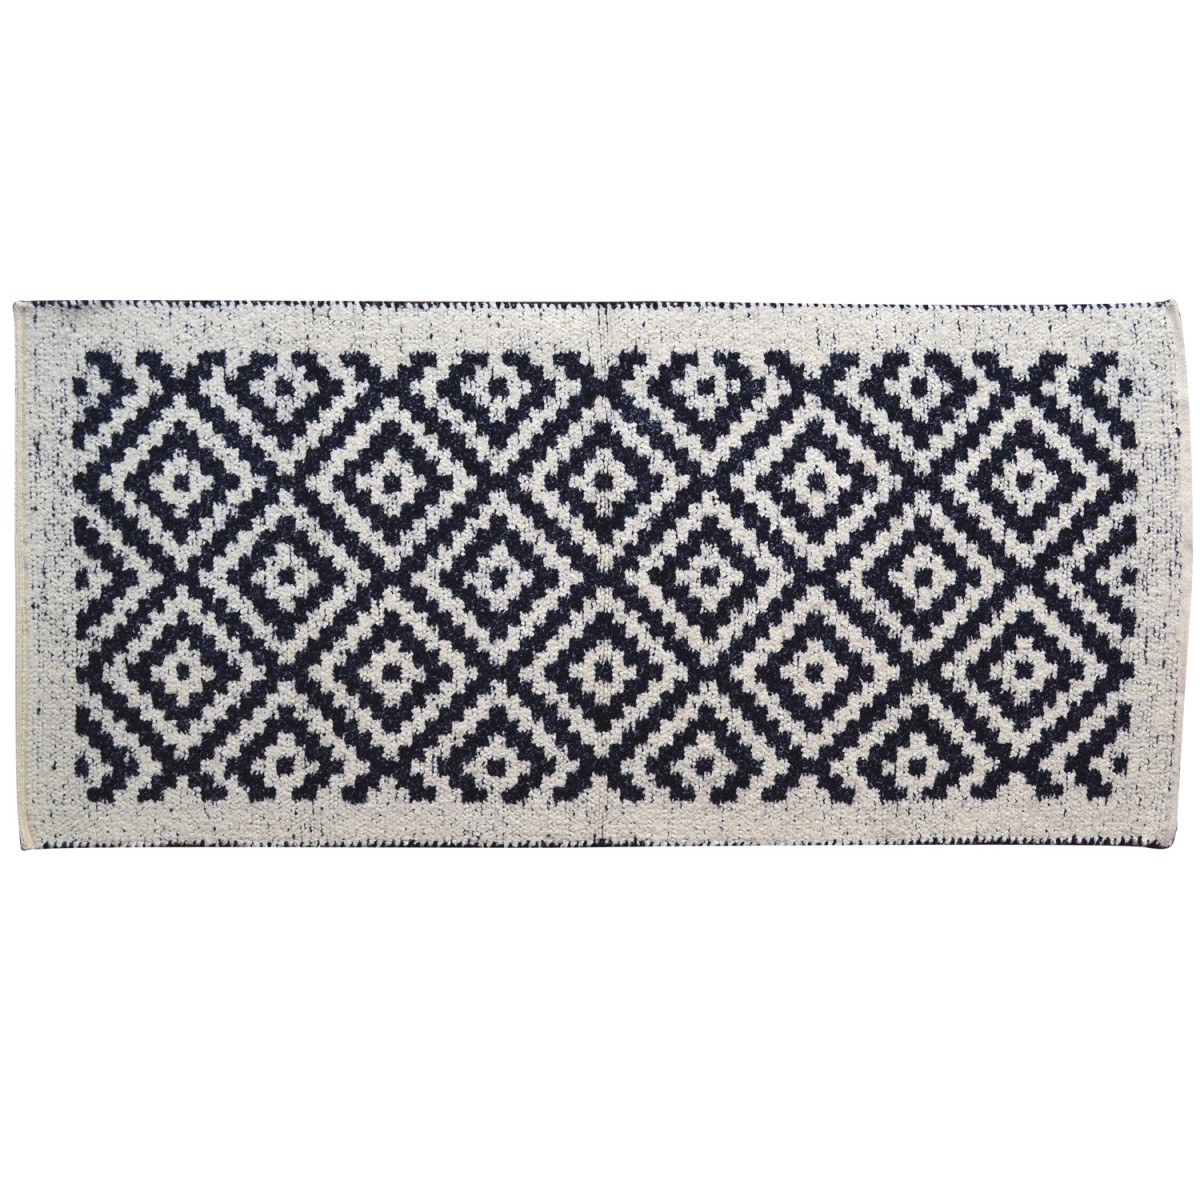 Rhombus_Two-sided_Cotton_Rug-1